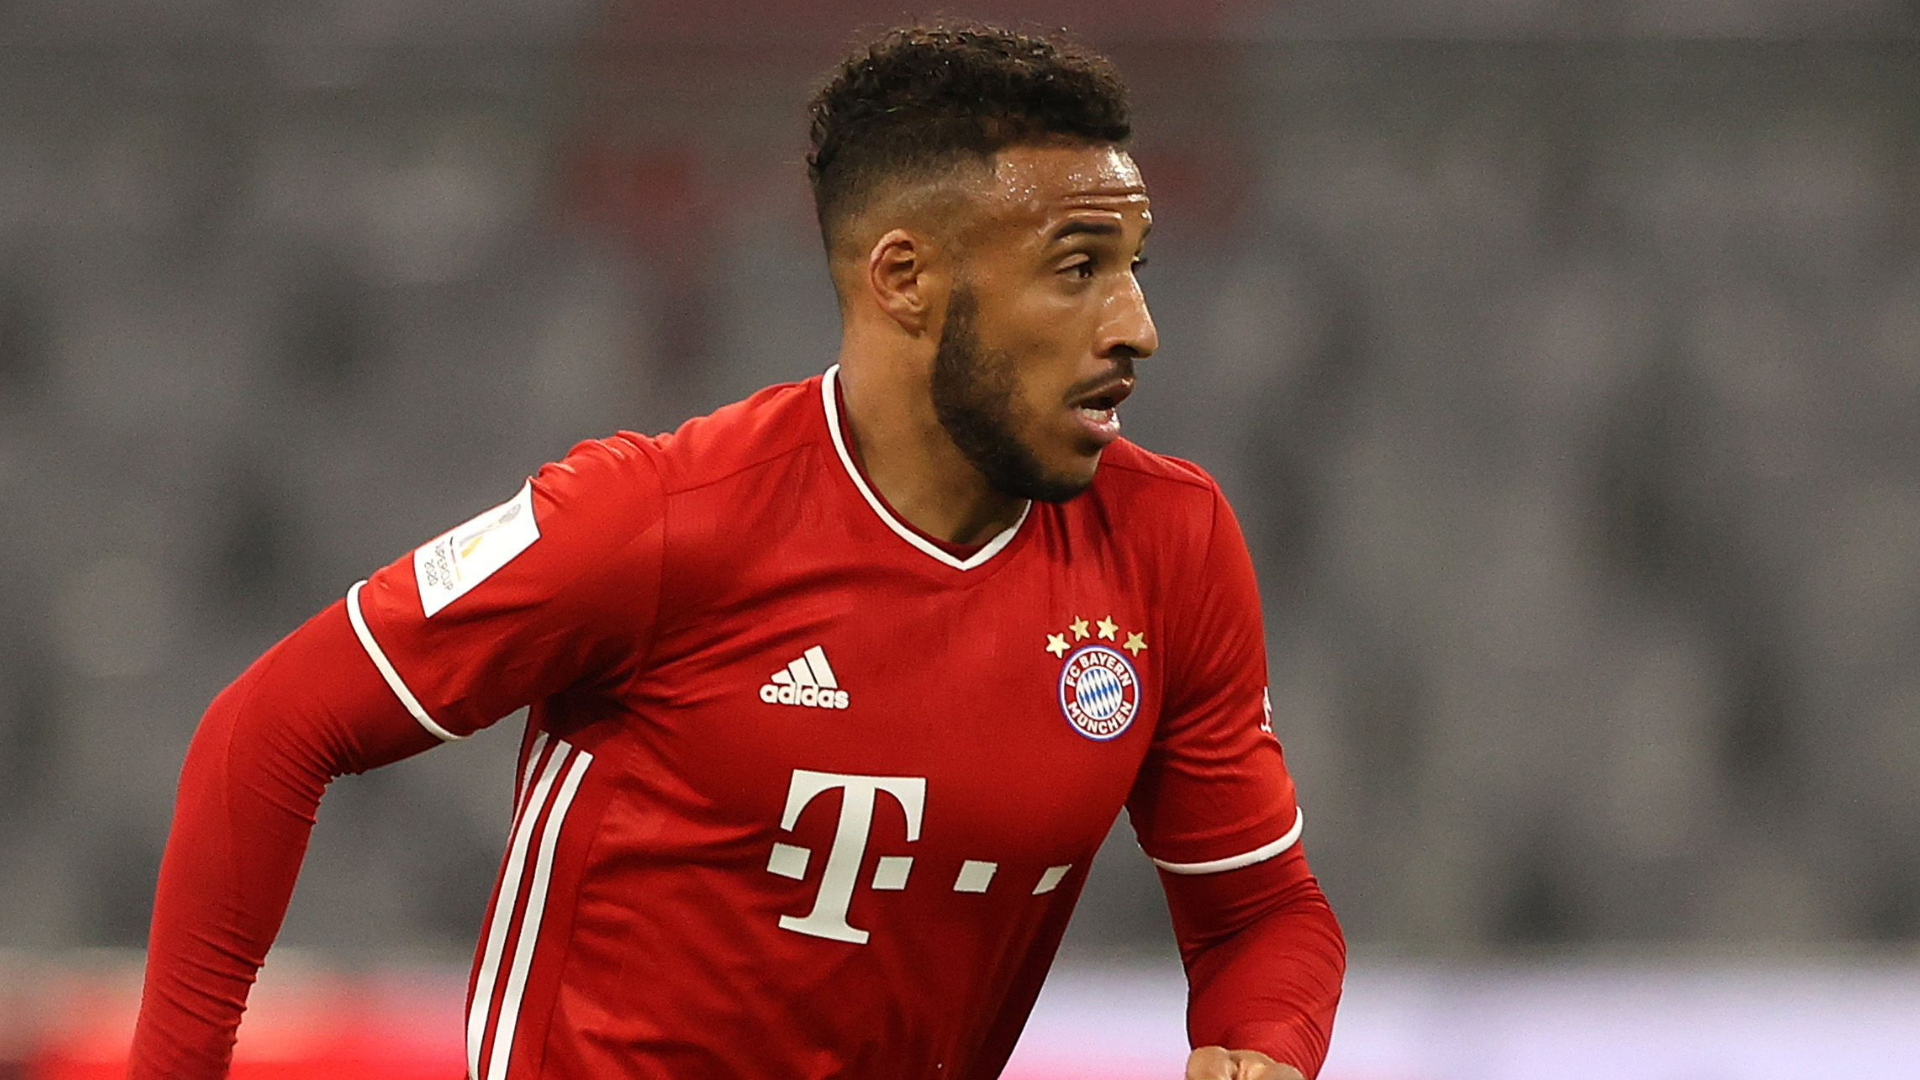 Tolisso fined and dropped by Bayern Munich after breaking Covid-19 rules to get a tattoo